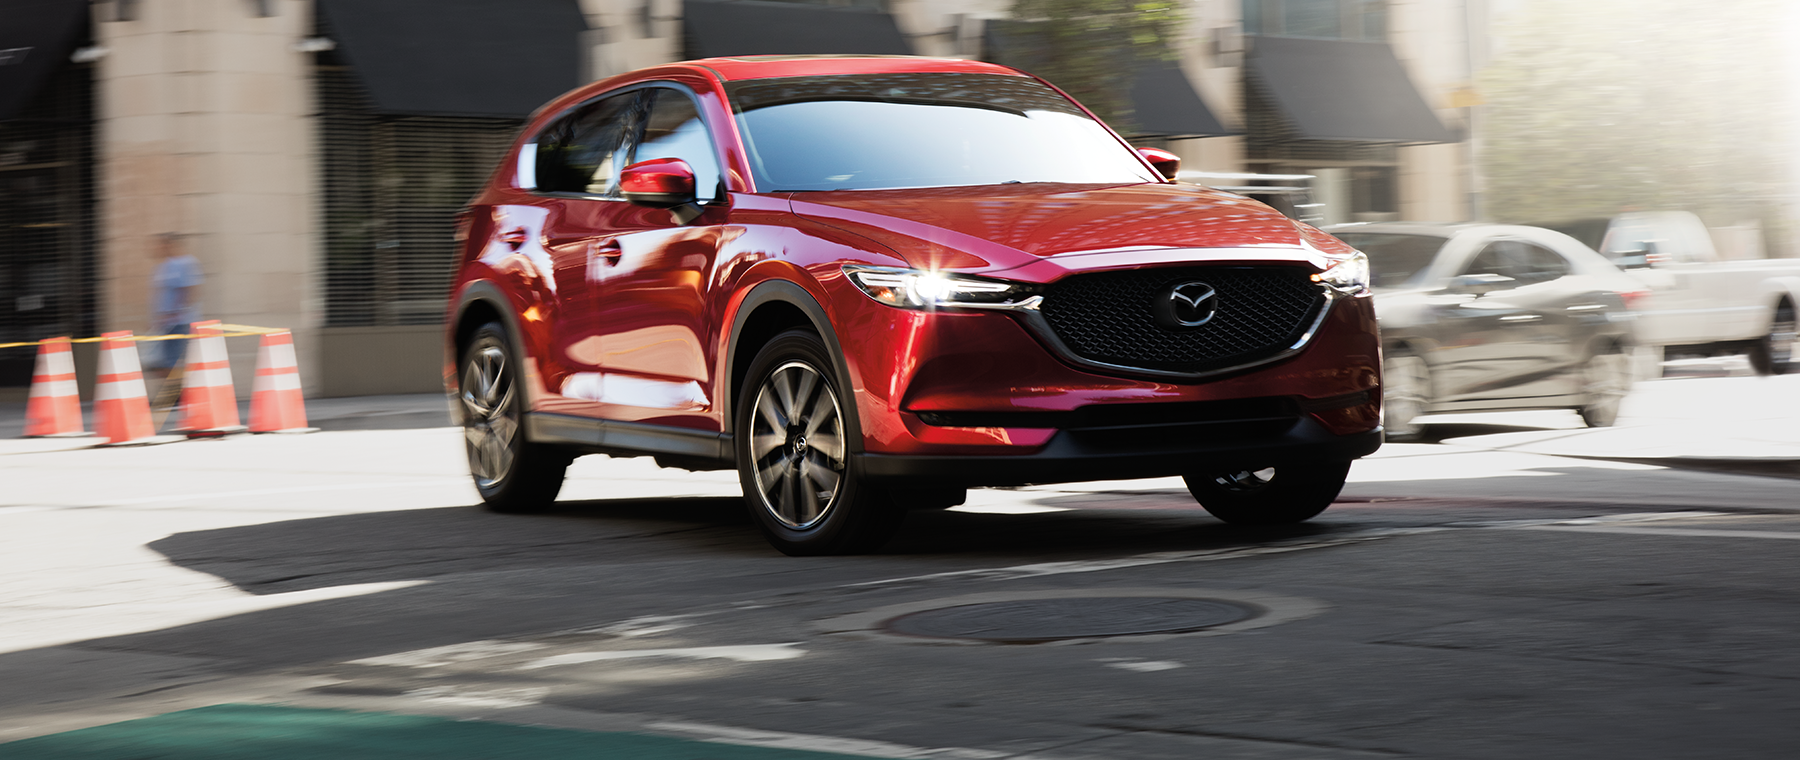 Oak Tree Mazda | San Francisco Bay Area Mazda Dealer